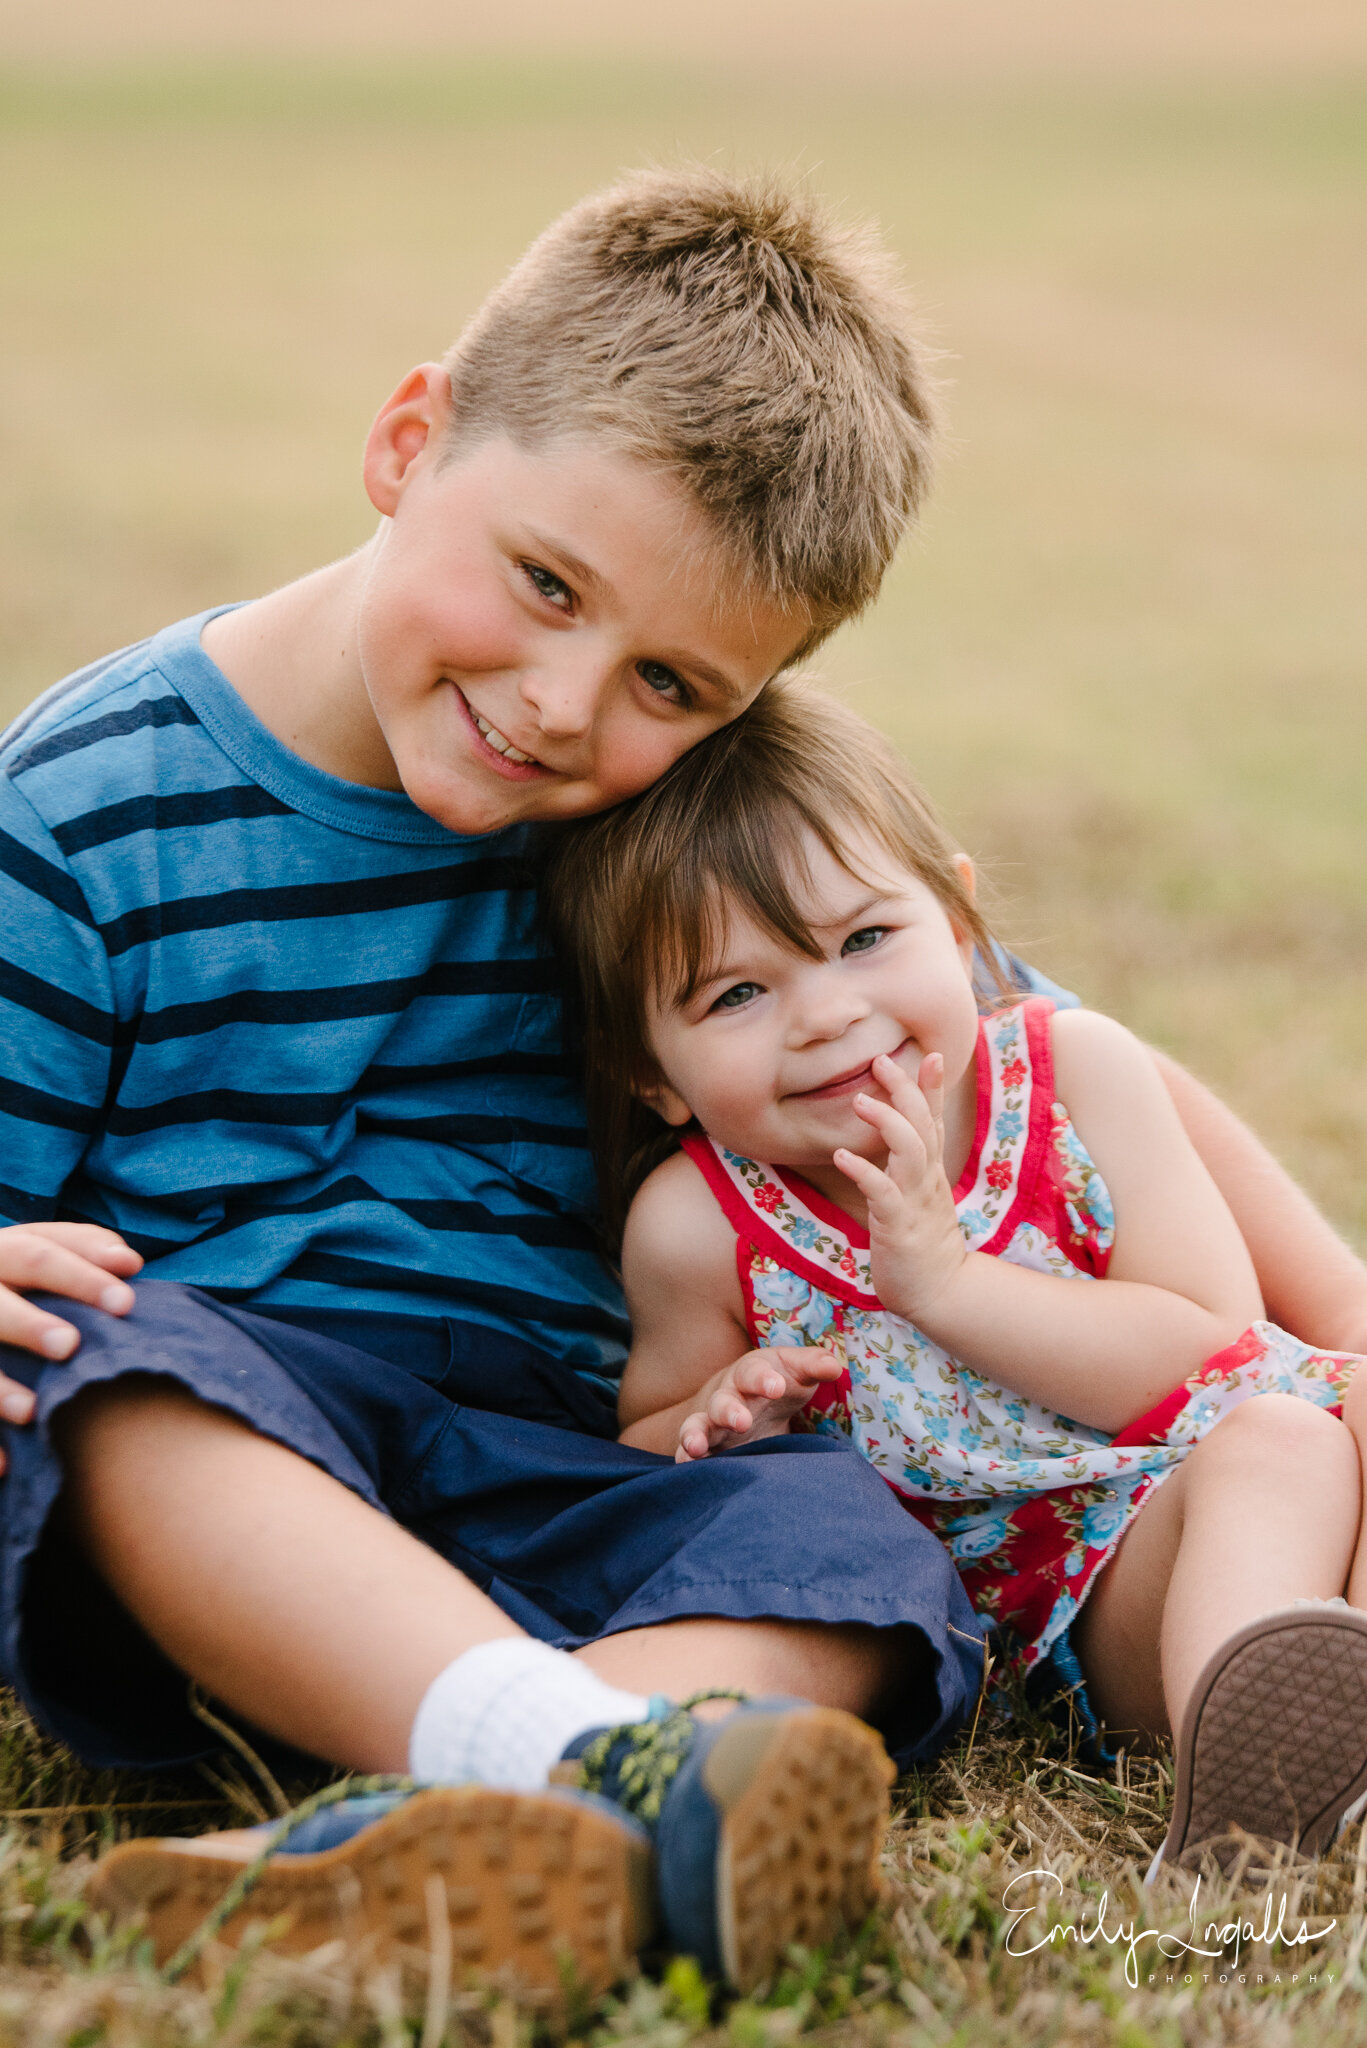 Brother and Sister photo_Round Rock Photographer_Emily Ingalls Photography_Austin Photographer_Pflugerville Photographer_Georgetown Photographer.jpg